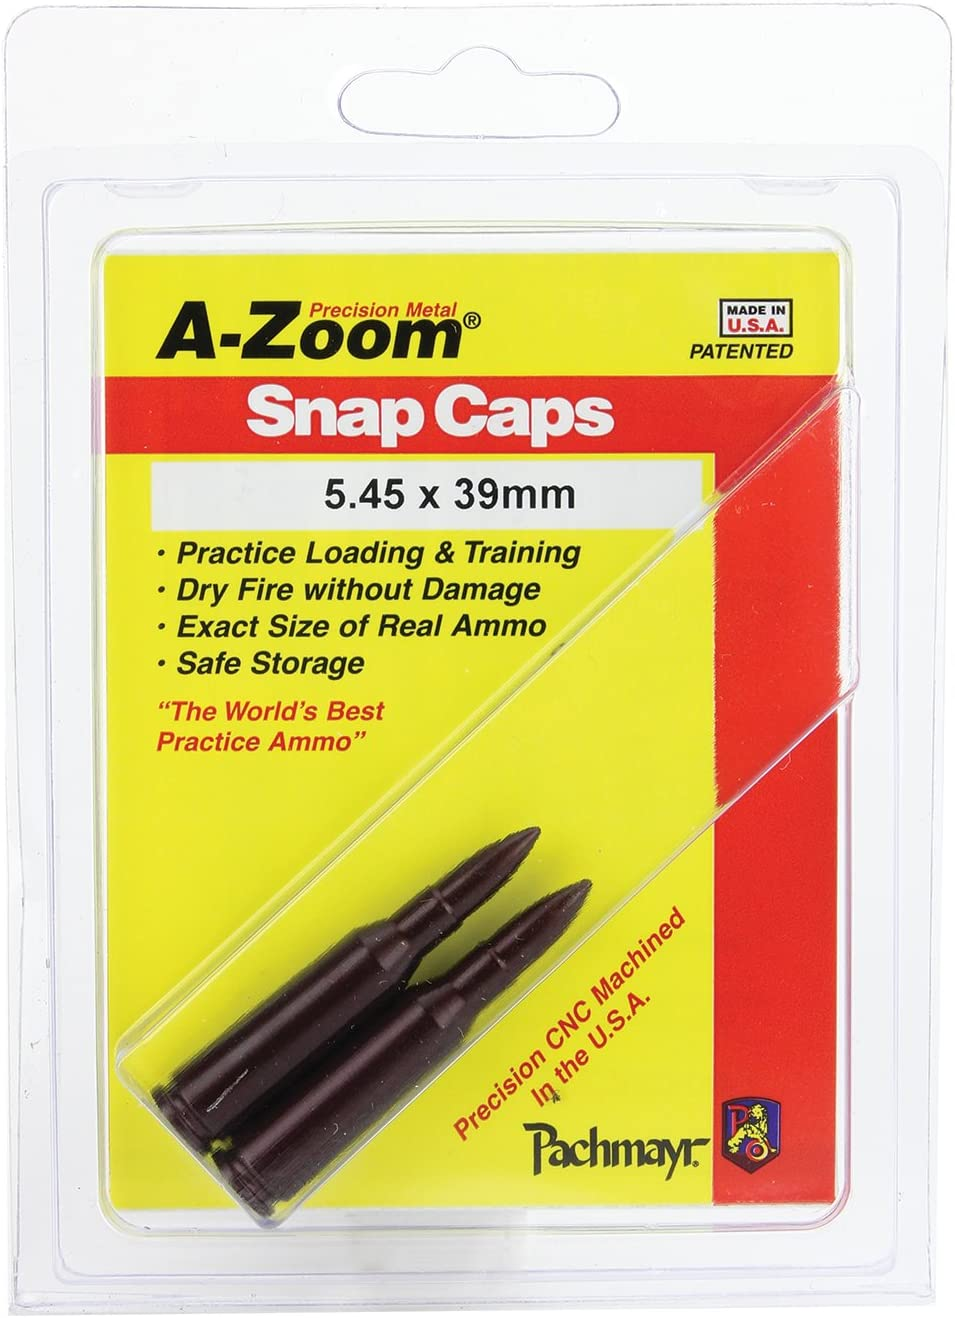 A-ZOOM 2 Pack Action Proving Dummy Round Snap Caps 5.45 x 39 2 Pack # 12285 New!